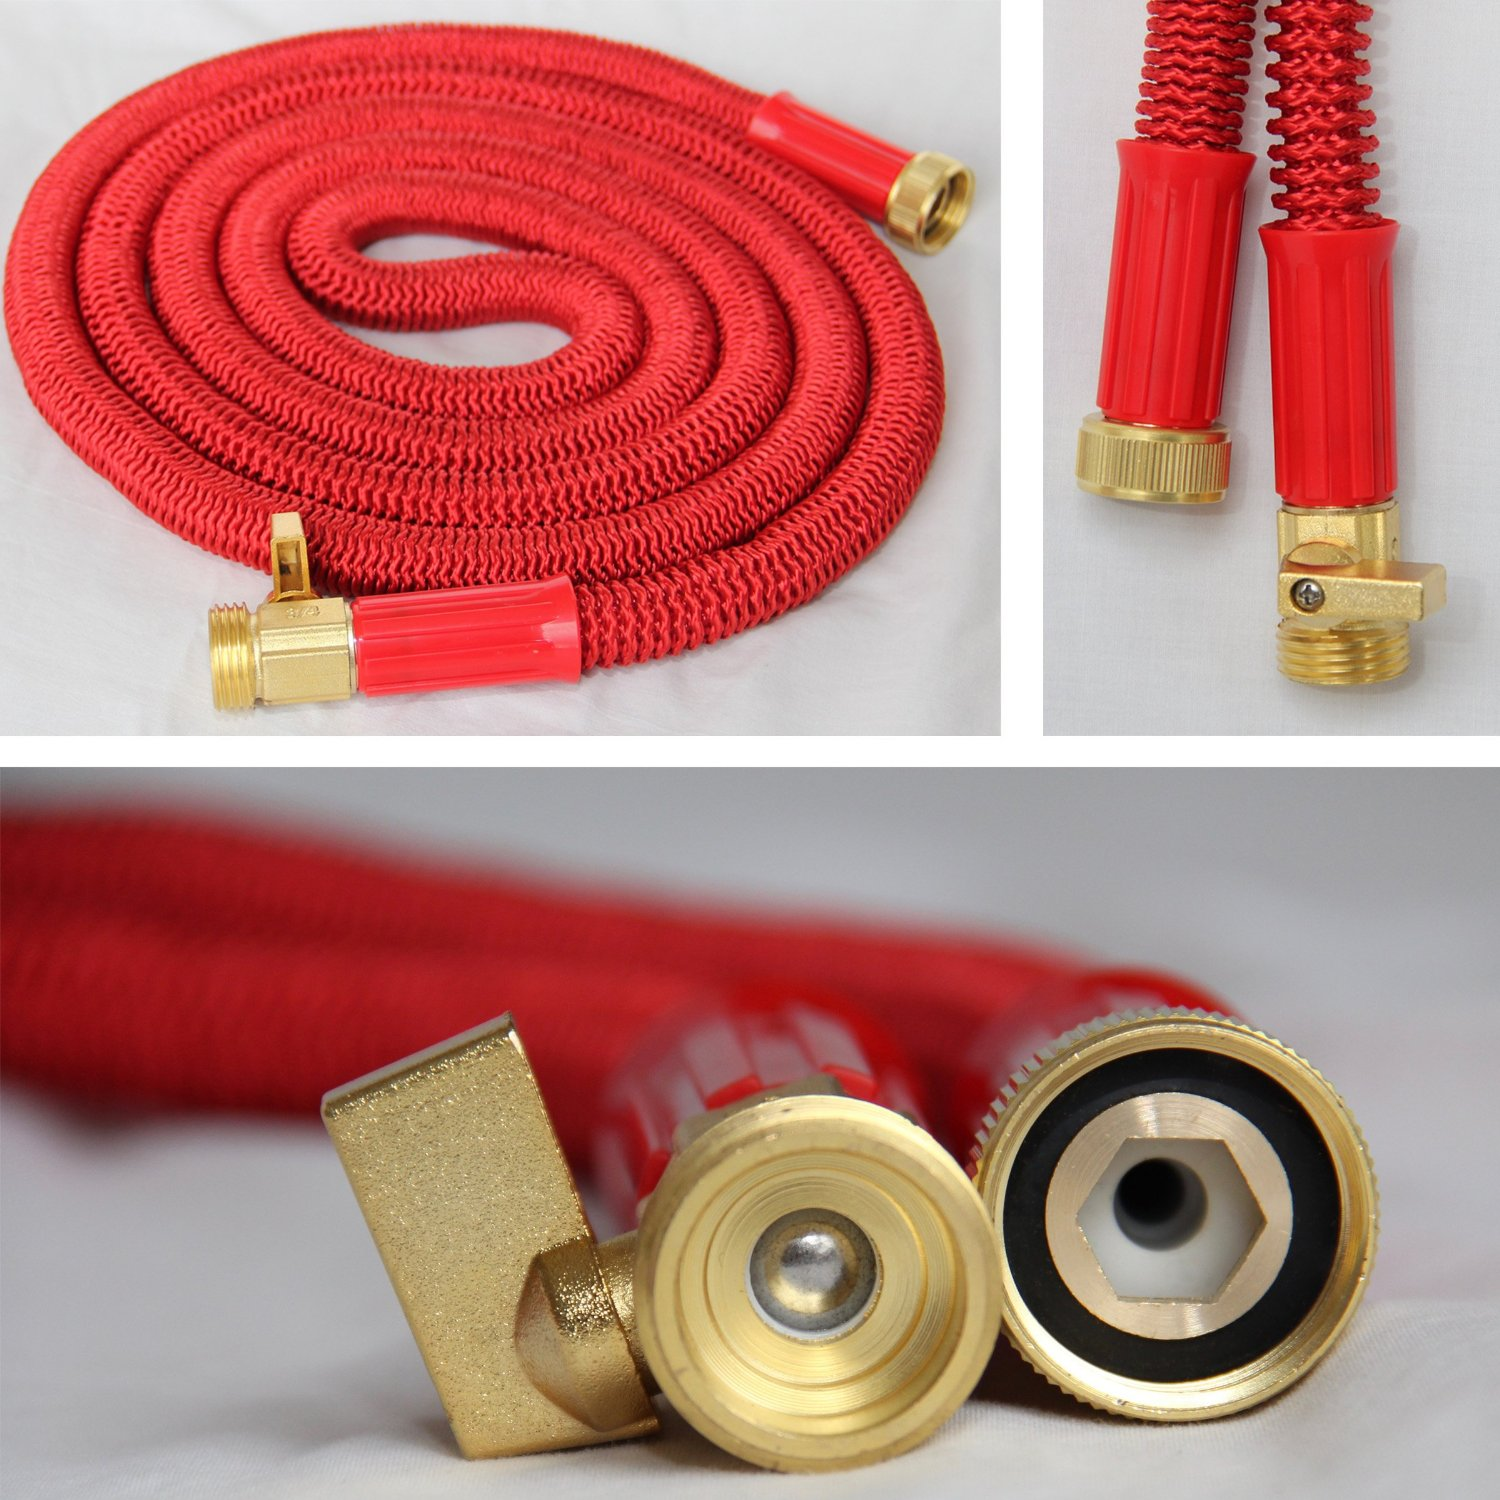 China Durable Updated Expandable Garden Hose Brass Fitting HT1079  factory manufacturer supplier